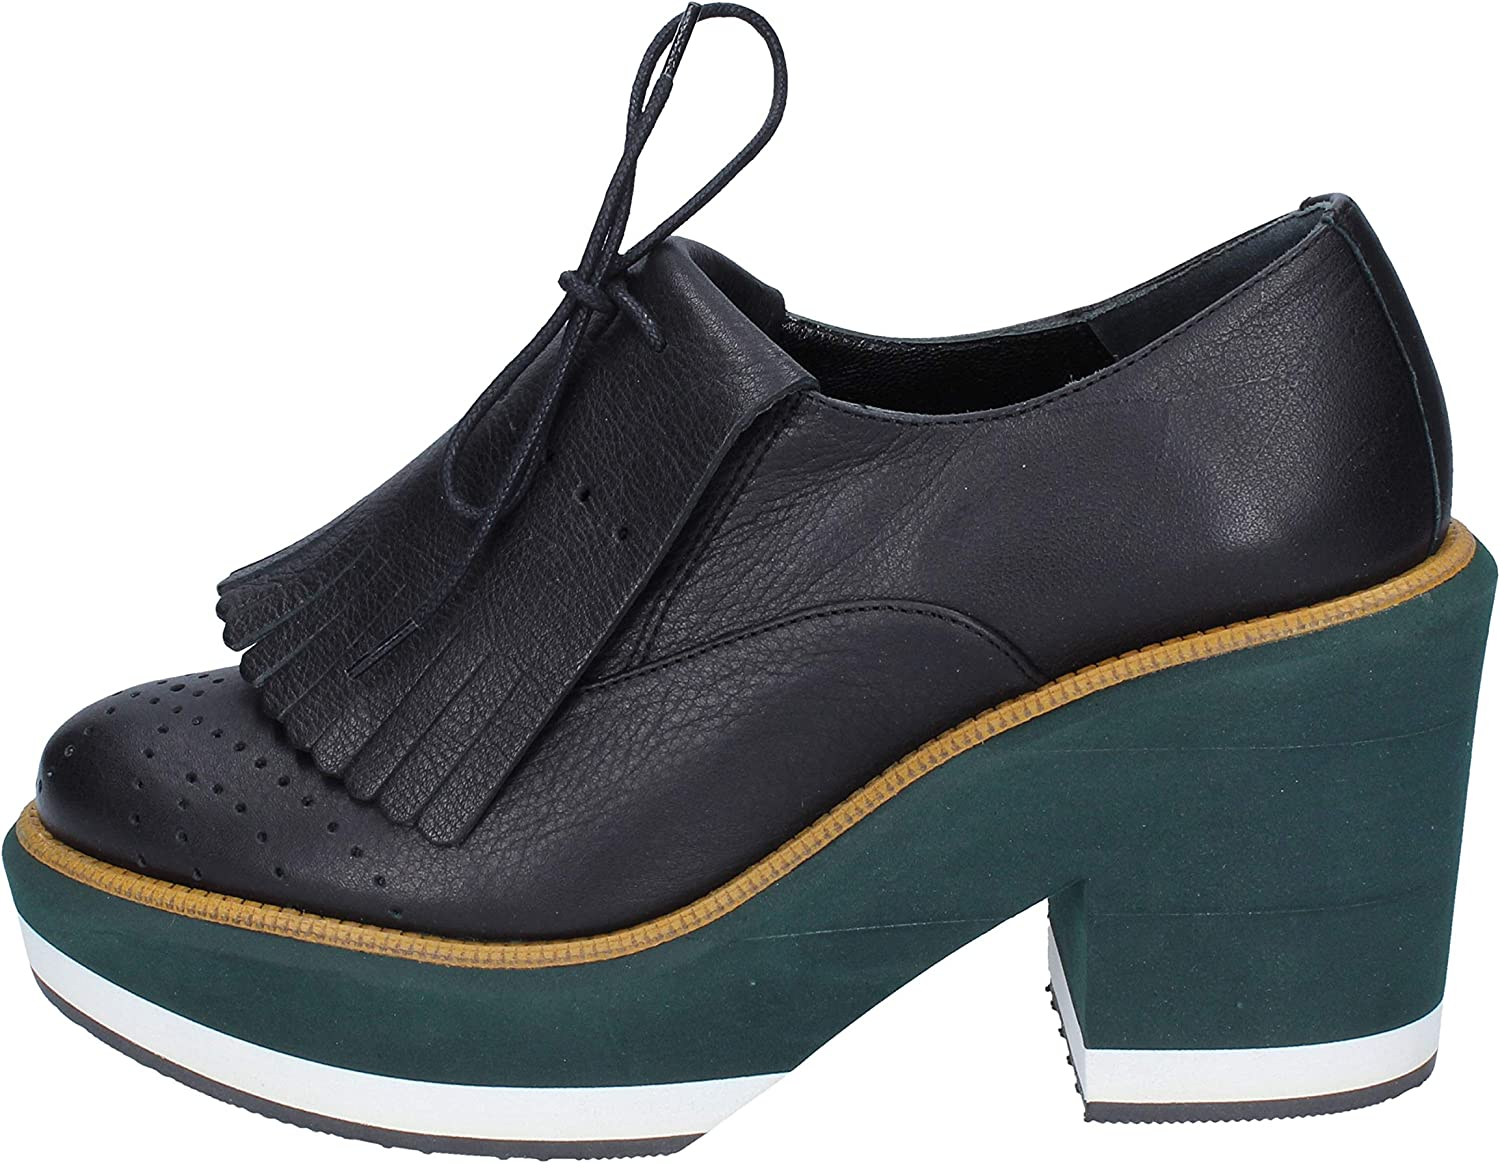 PALOMA BARCELO Oxfords-shoes Womens Leather Black